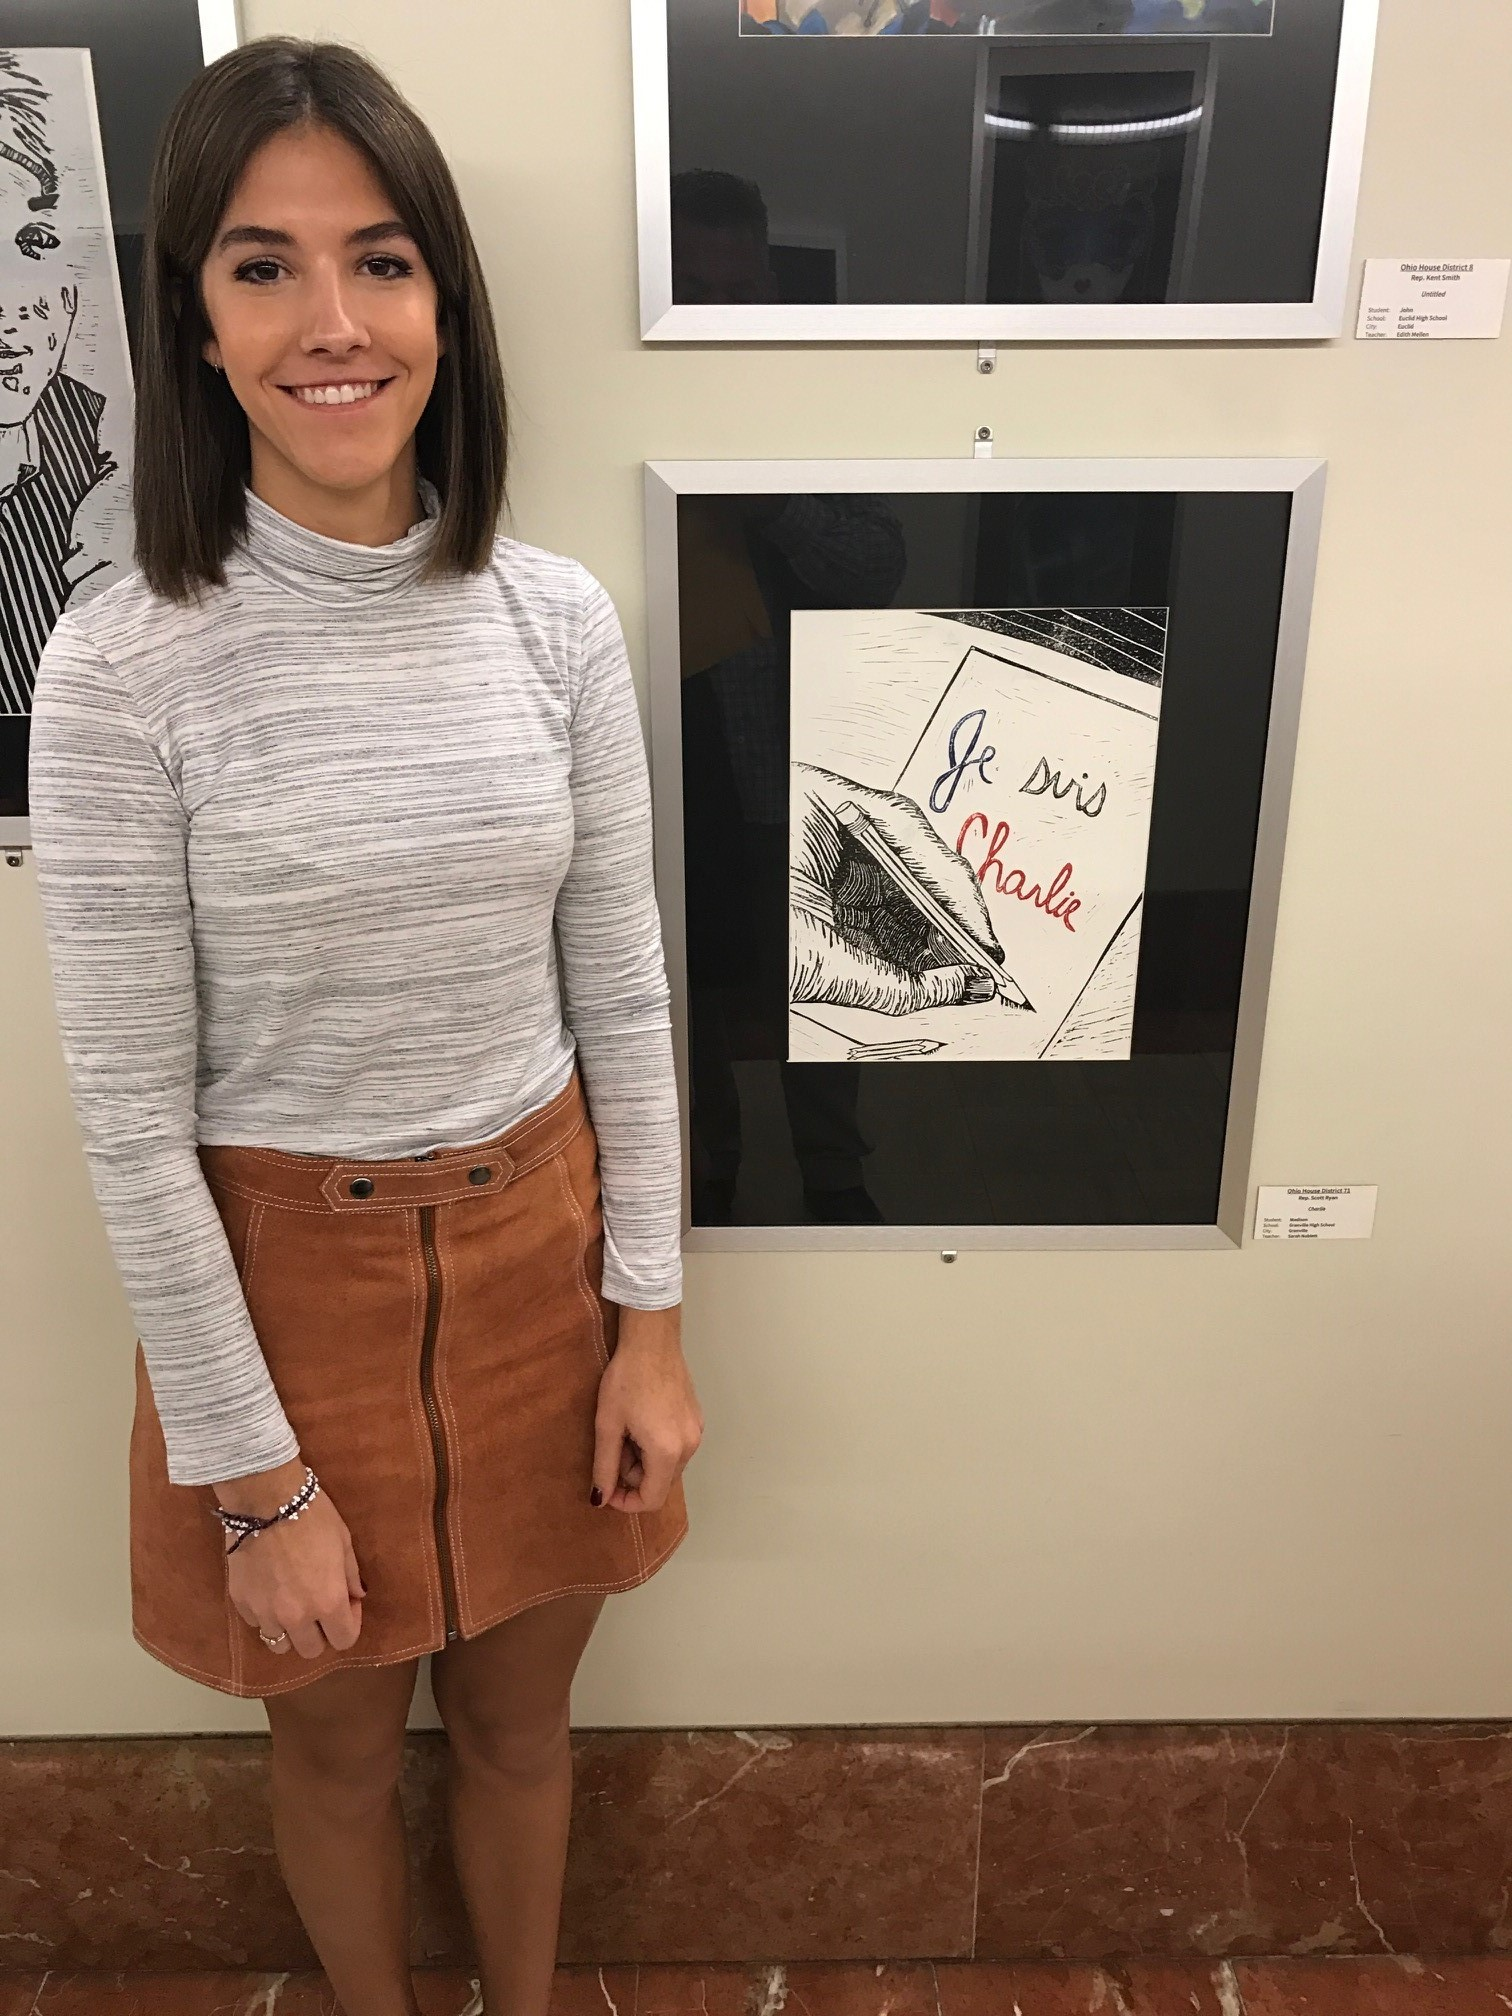 Madison Koester's Art Displayed at Ohio Statehouse